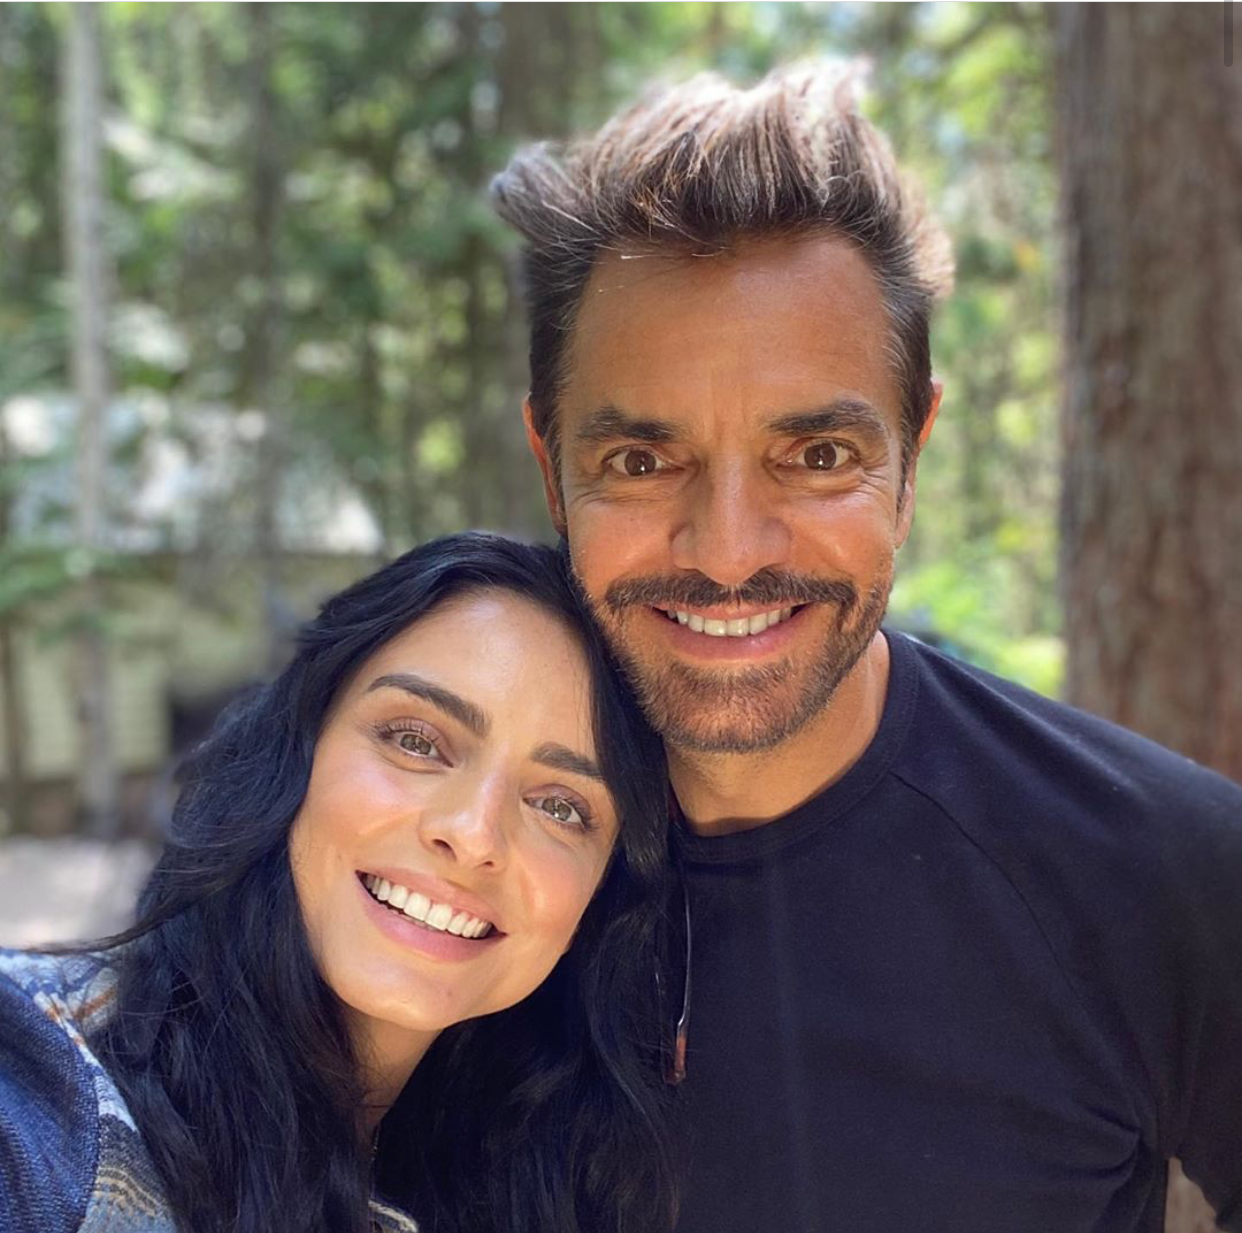 Aislinn Derbez Eugenio Derbez